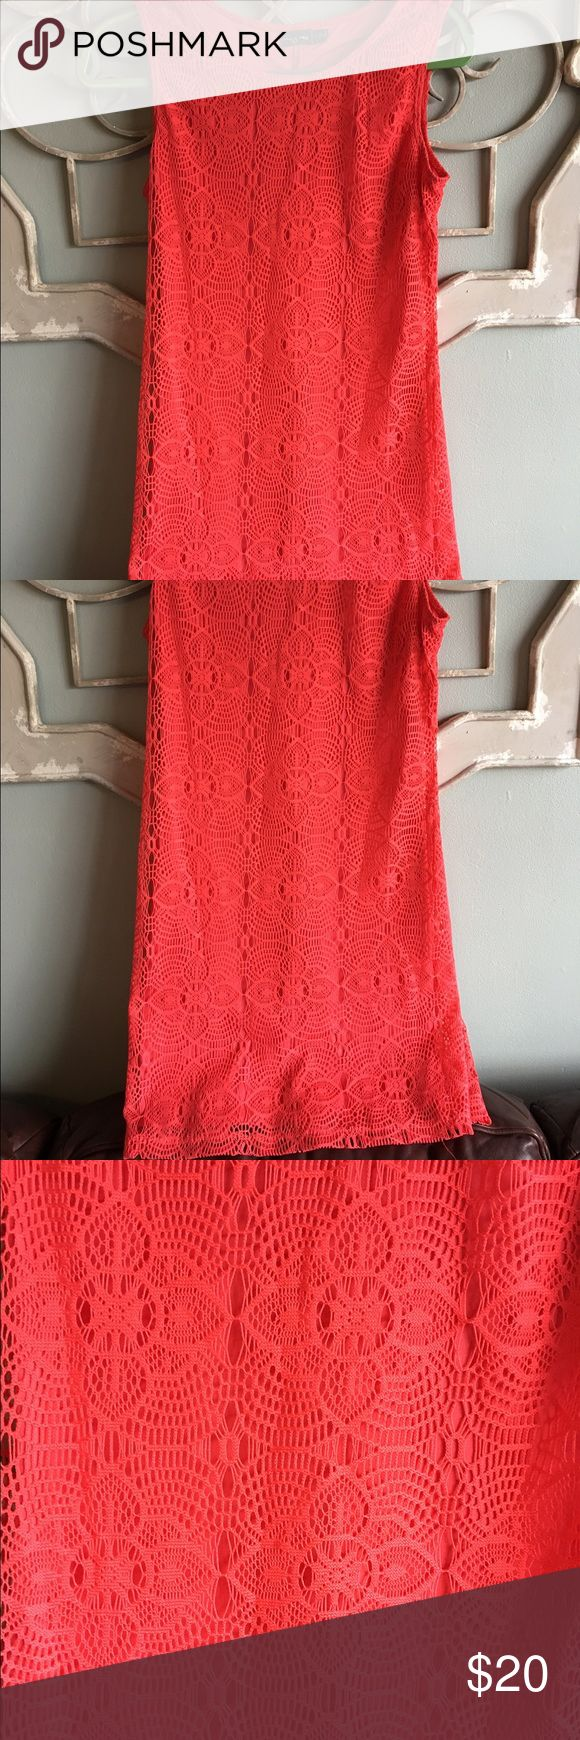 "🌟2 for $15🌟 Coral crochet dress Gently used, only worn a few times. VERY COMFORTABLE! Has nice detail shown in picture.            🌸 100% Polyester 🌸Bust 32"""".🌸Length 32""         ✖️NO TRADES.                                                                    🔹Please ask all questions before purchasing                  🔹Same or next day shipping. Except weekends Dresses"